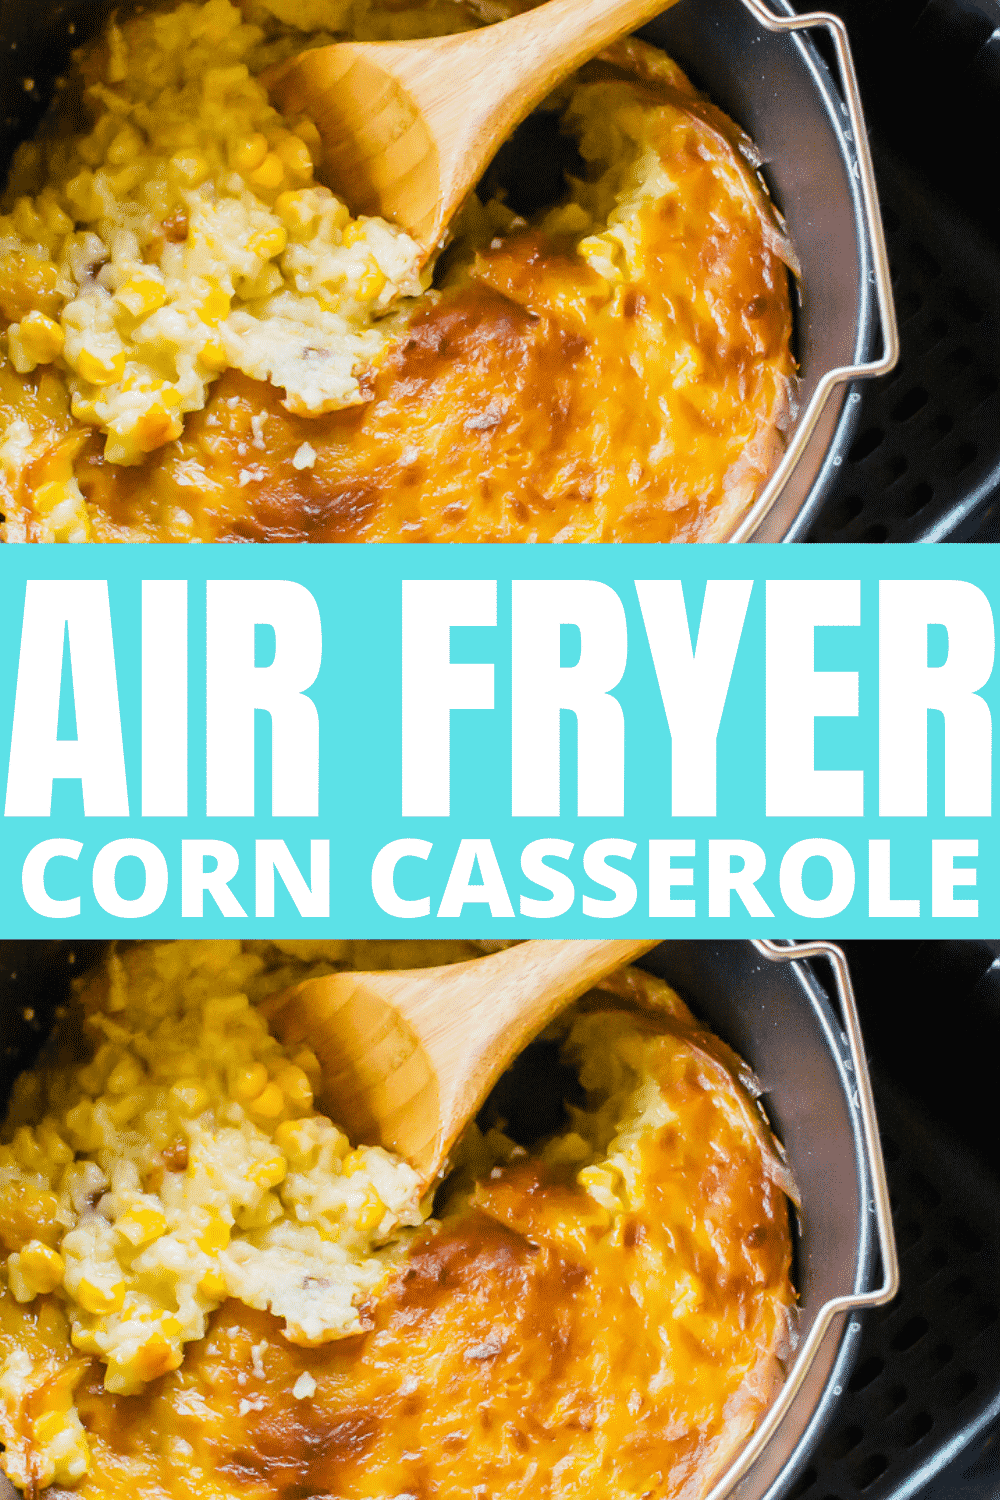 This air fryer creamed corn casserole is a simple, no-fail recipes that tastes just like Grandma used to make. This corn casserole is perfect for the holidays or your next family dinner. #airfryer #sidedish #holidaydish #creamedcorn #corncasserole via @vegetarianmamma